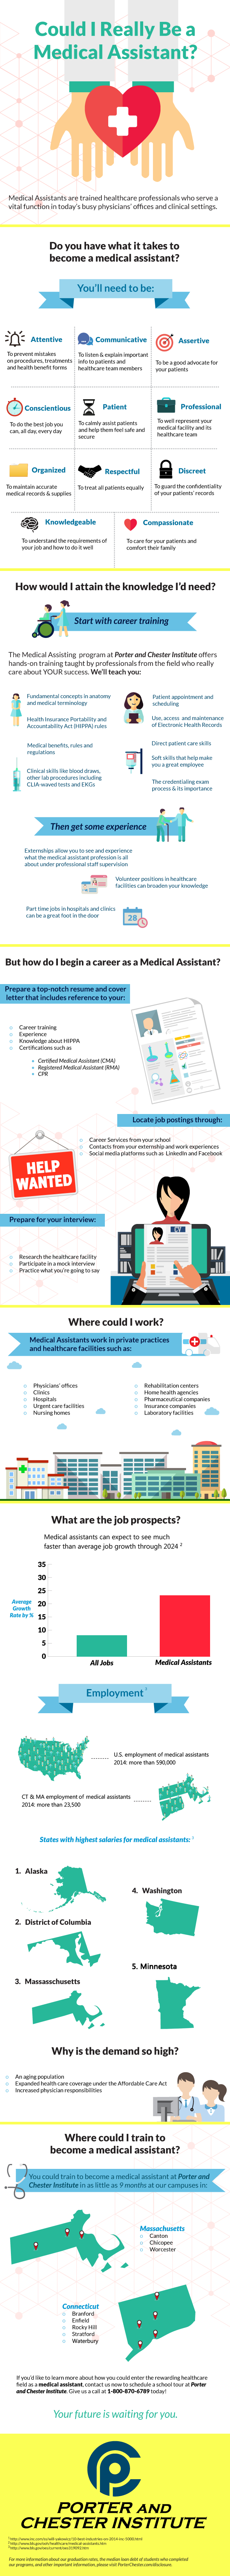 Medical Assistant Program Infographic